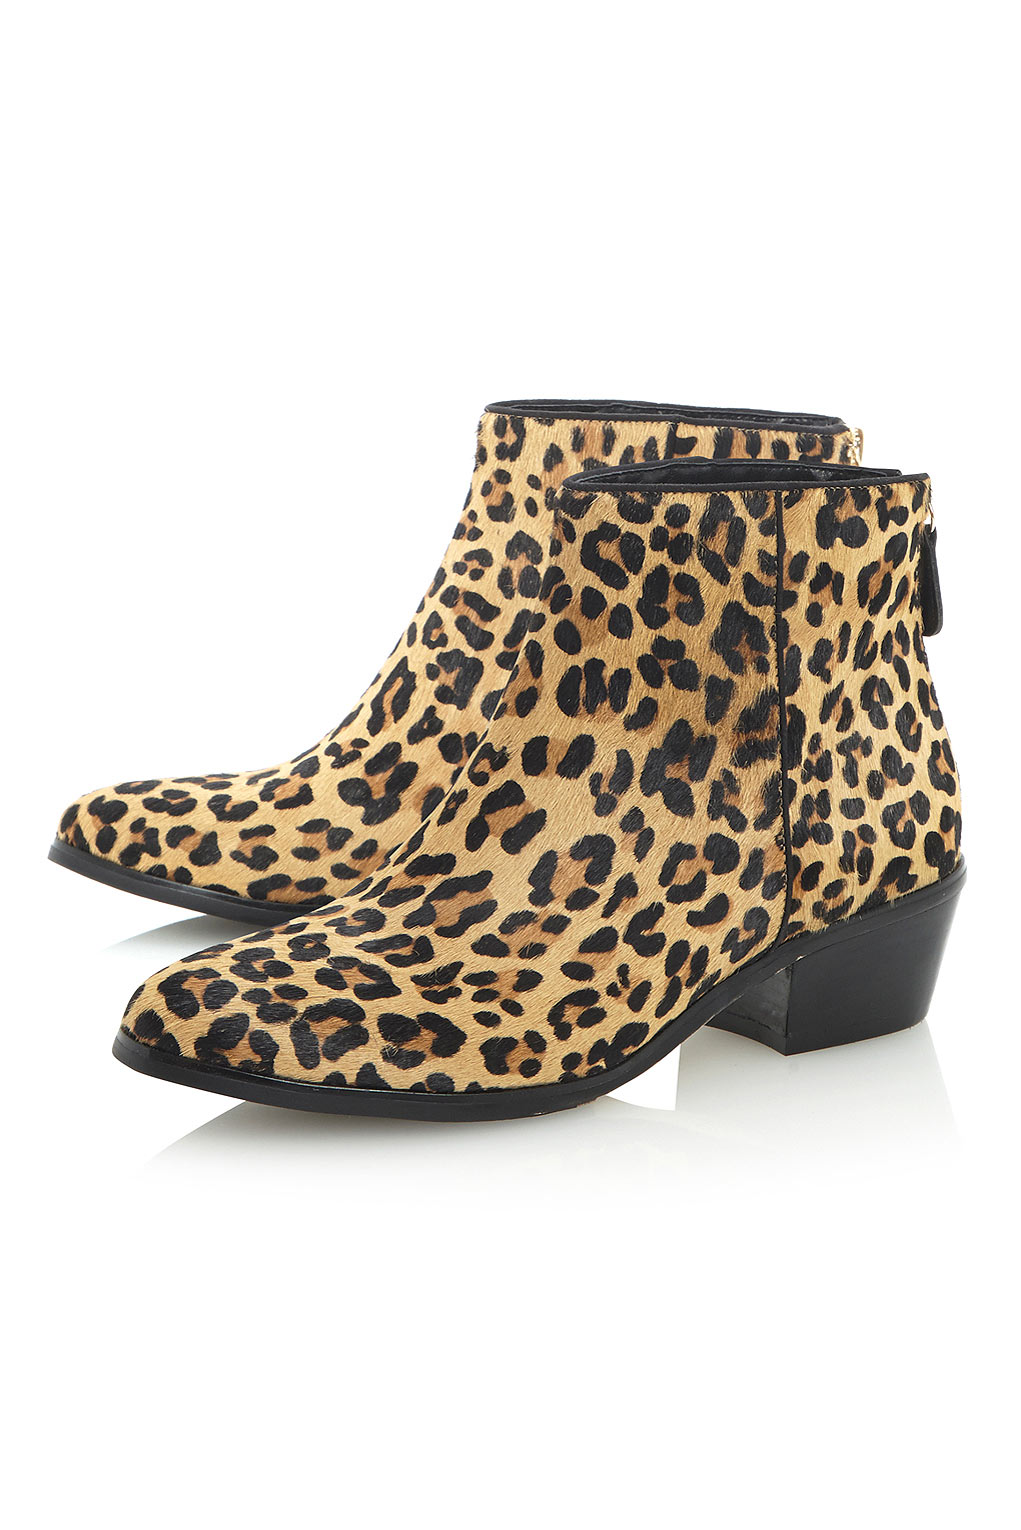 Topshop Peopard Pony Leopard Print Ankle Boots By Dune